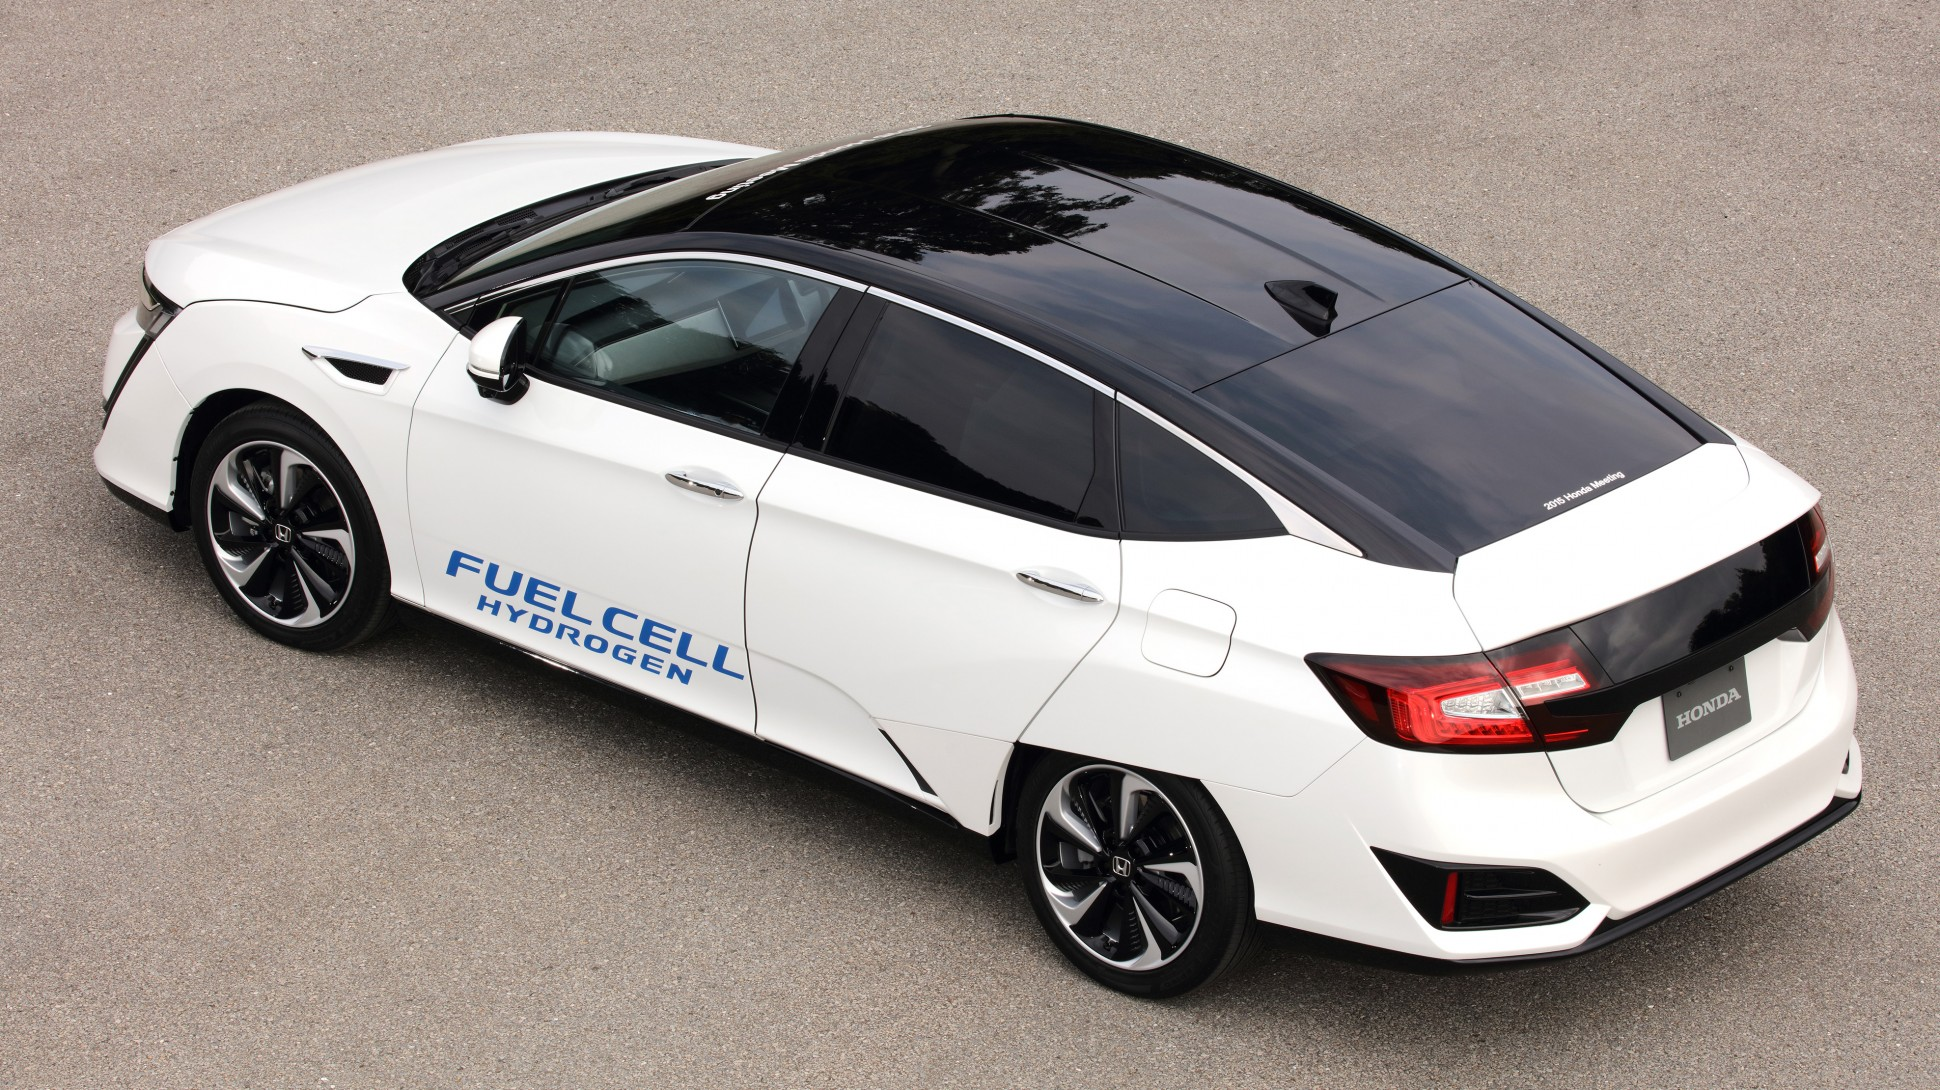 Clarity Fuel Cell Launching Hydrogen Powered Car in 2016